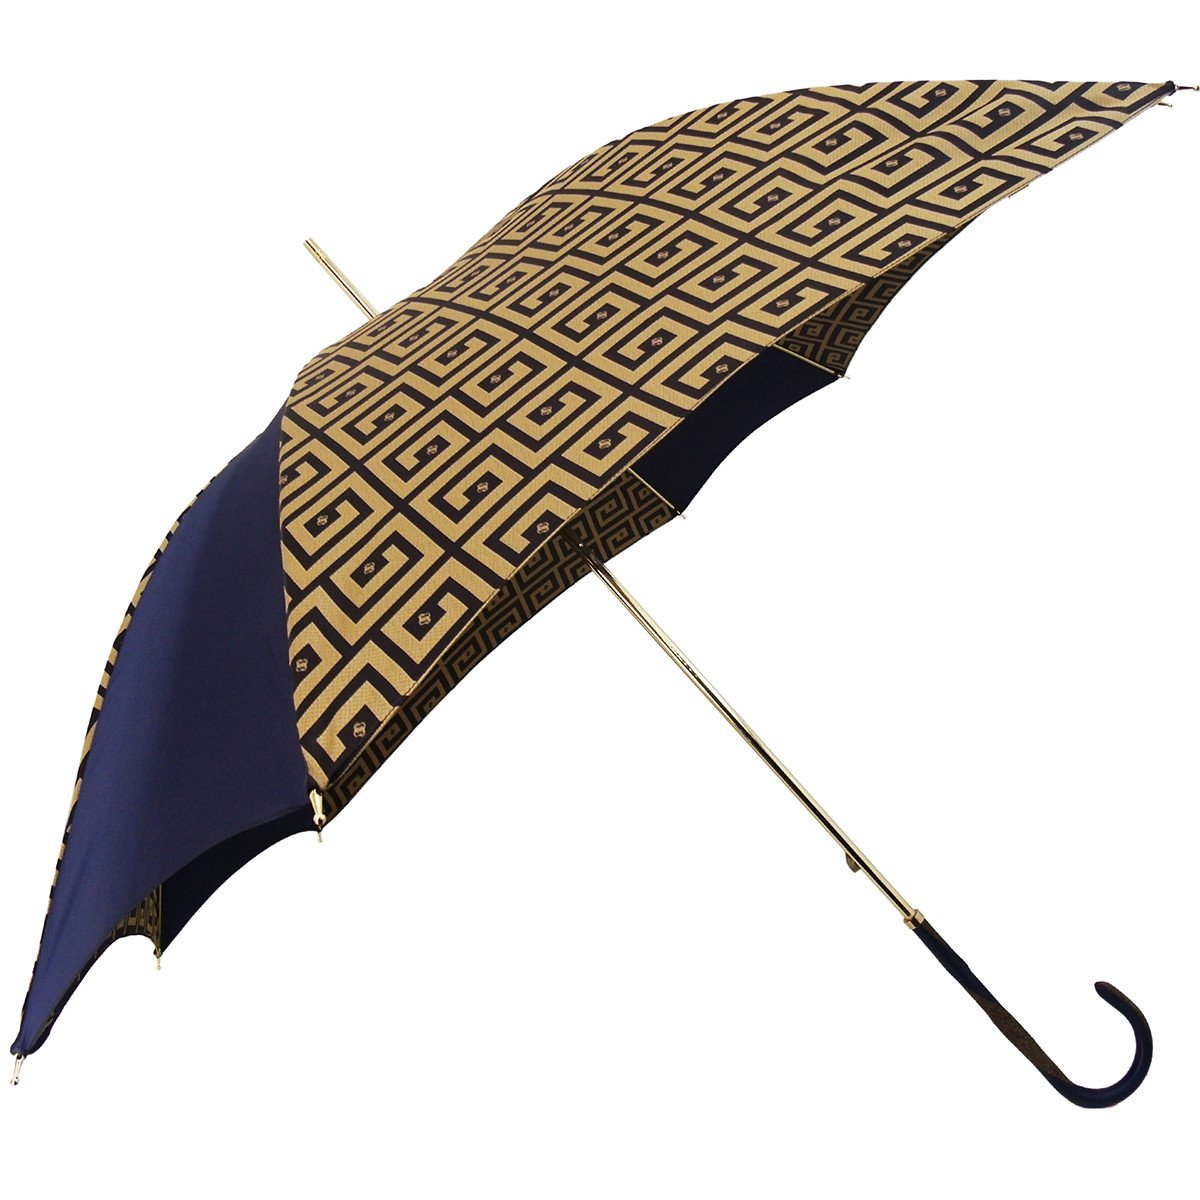 Original Handcrafted Umbrella with golden Greek design - il-marchesato